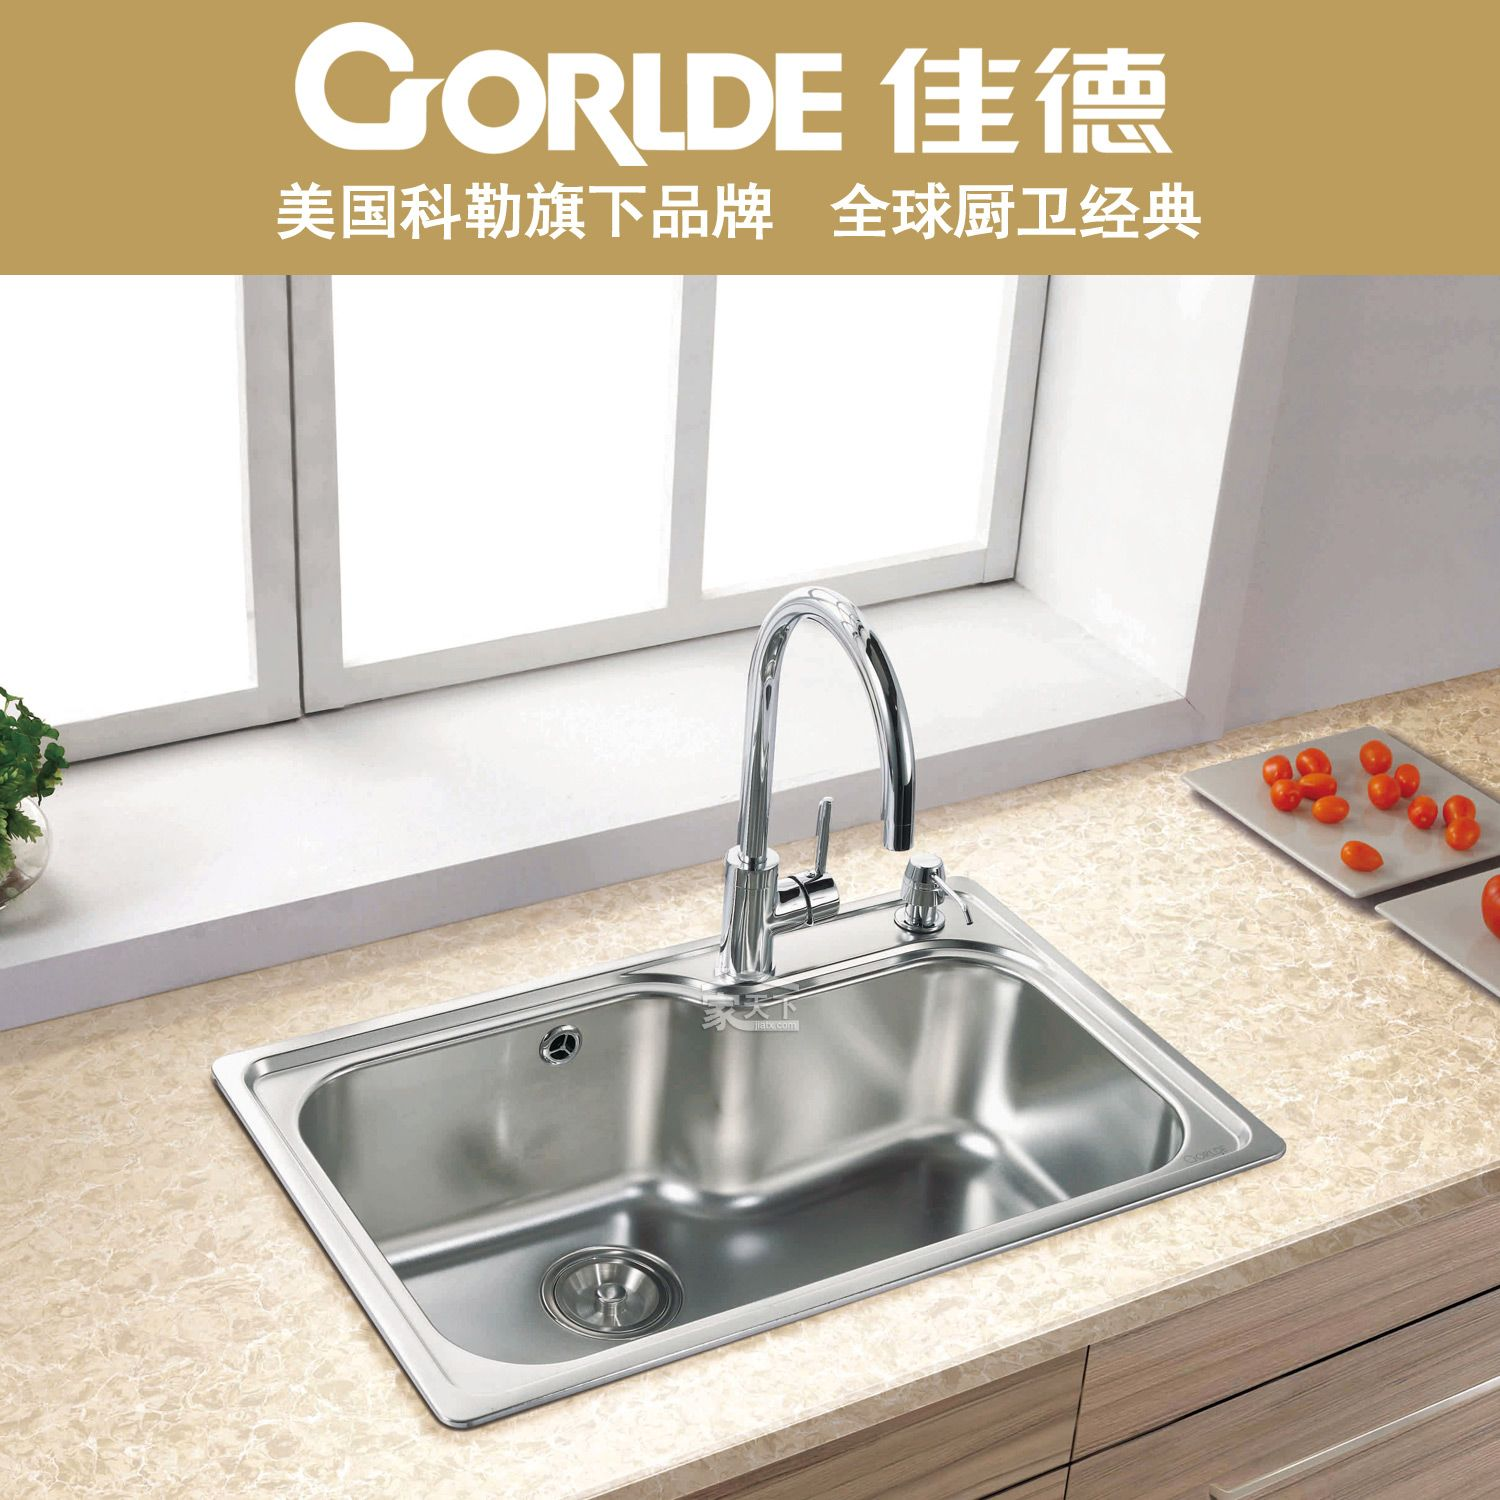 kohler purist kitchen faucet white curtains 厨盆 水槽 gorlde佳德 美国科勒旗下品牌 yl05水盆 2295龙头 dp16皂液器 dp16